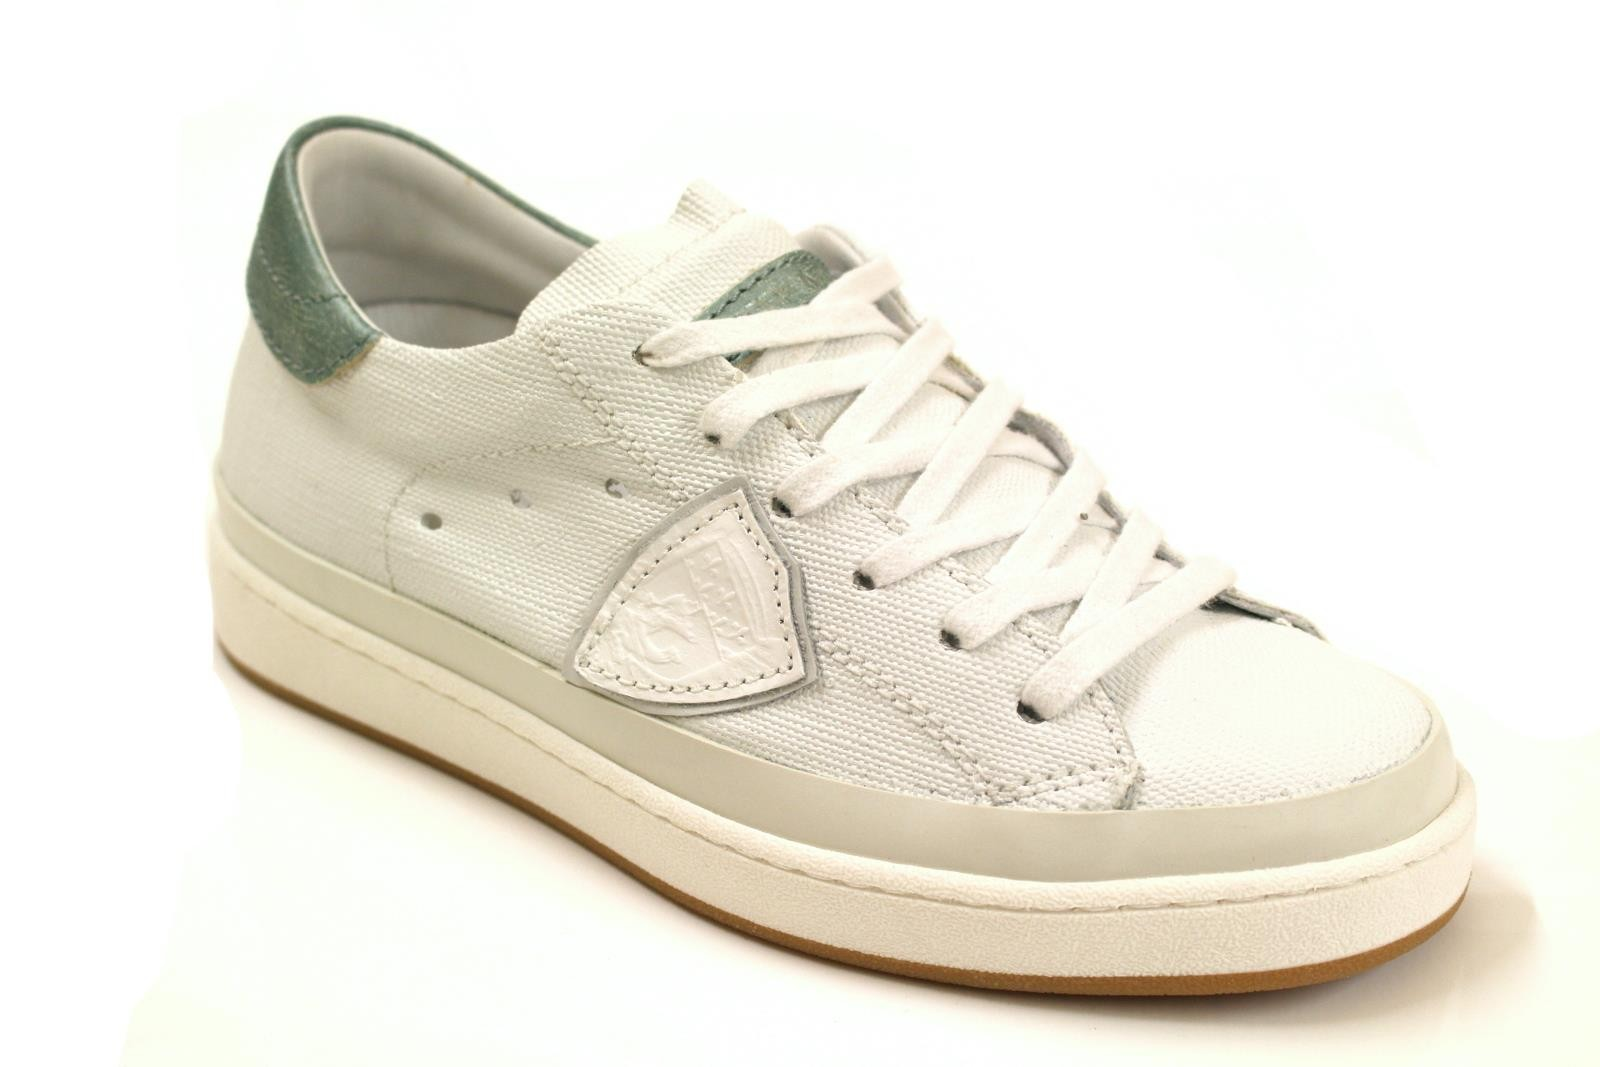 Philippe model Sneakers Classic in bianco Shop online